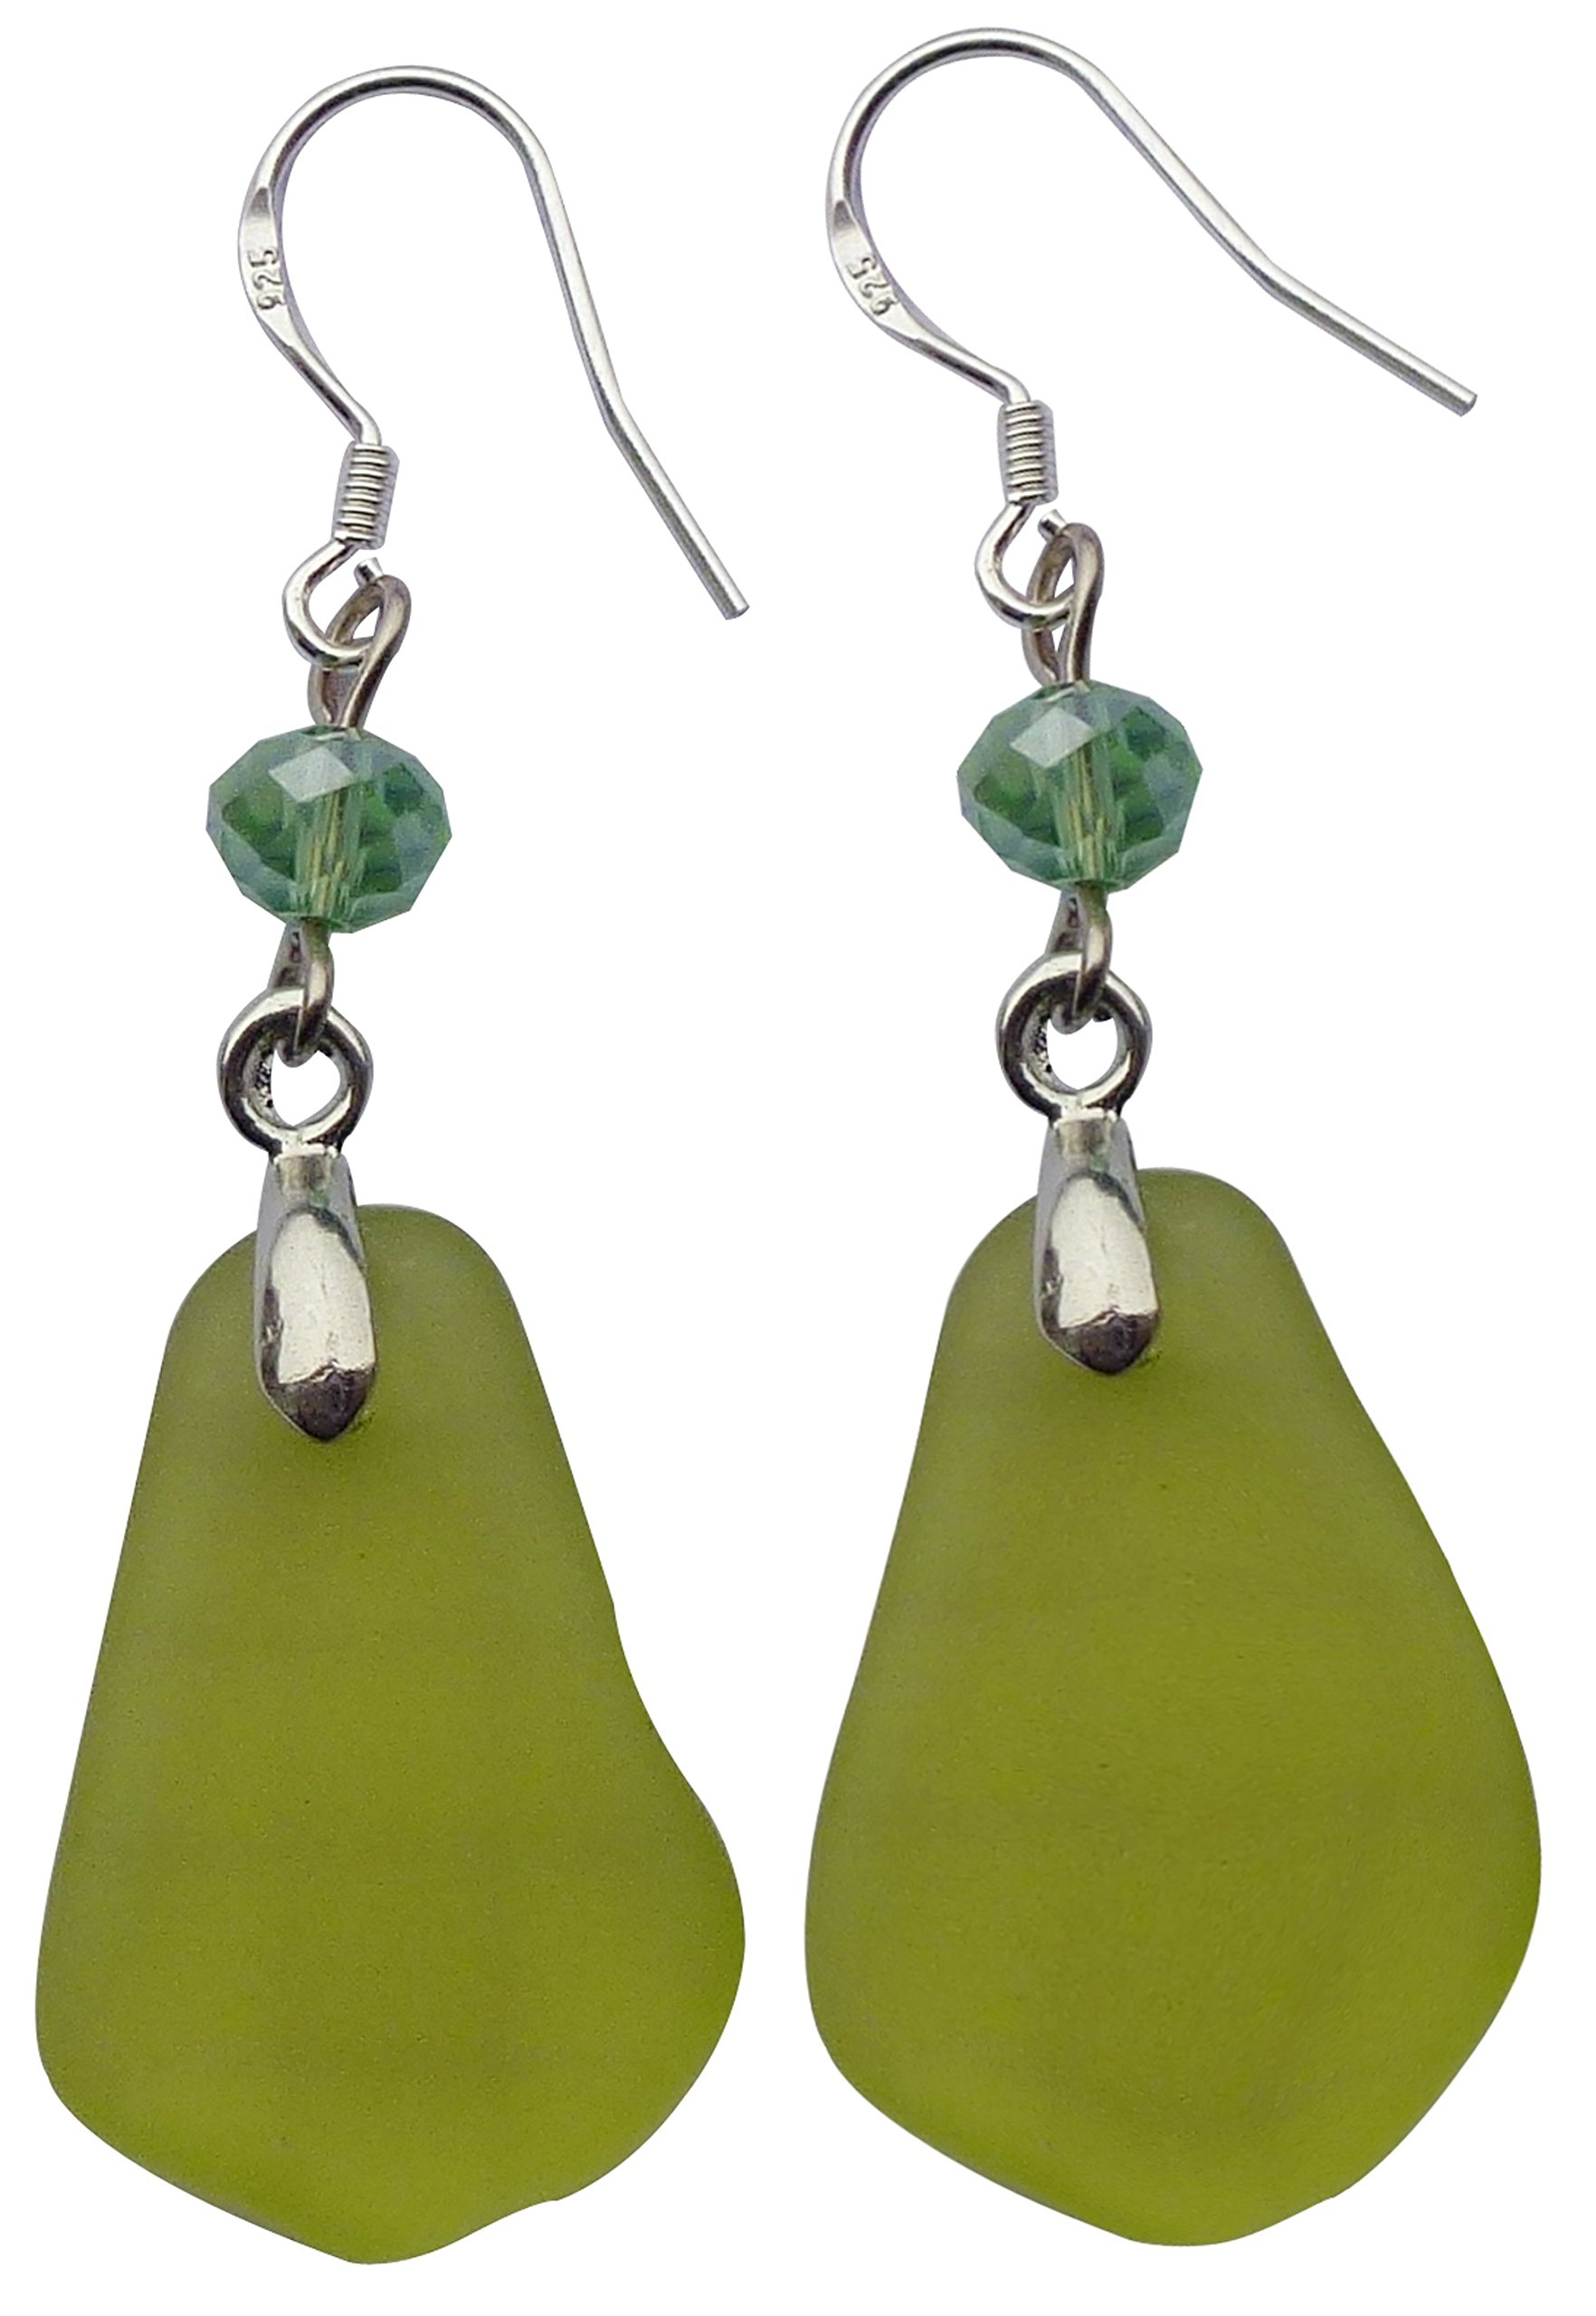 Fashion Olive Green Beach Sea Glass Earring Drop Dangle Handmade with Silver Hook,Gift Package JCT ECO